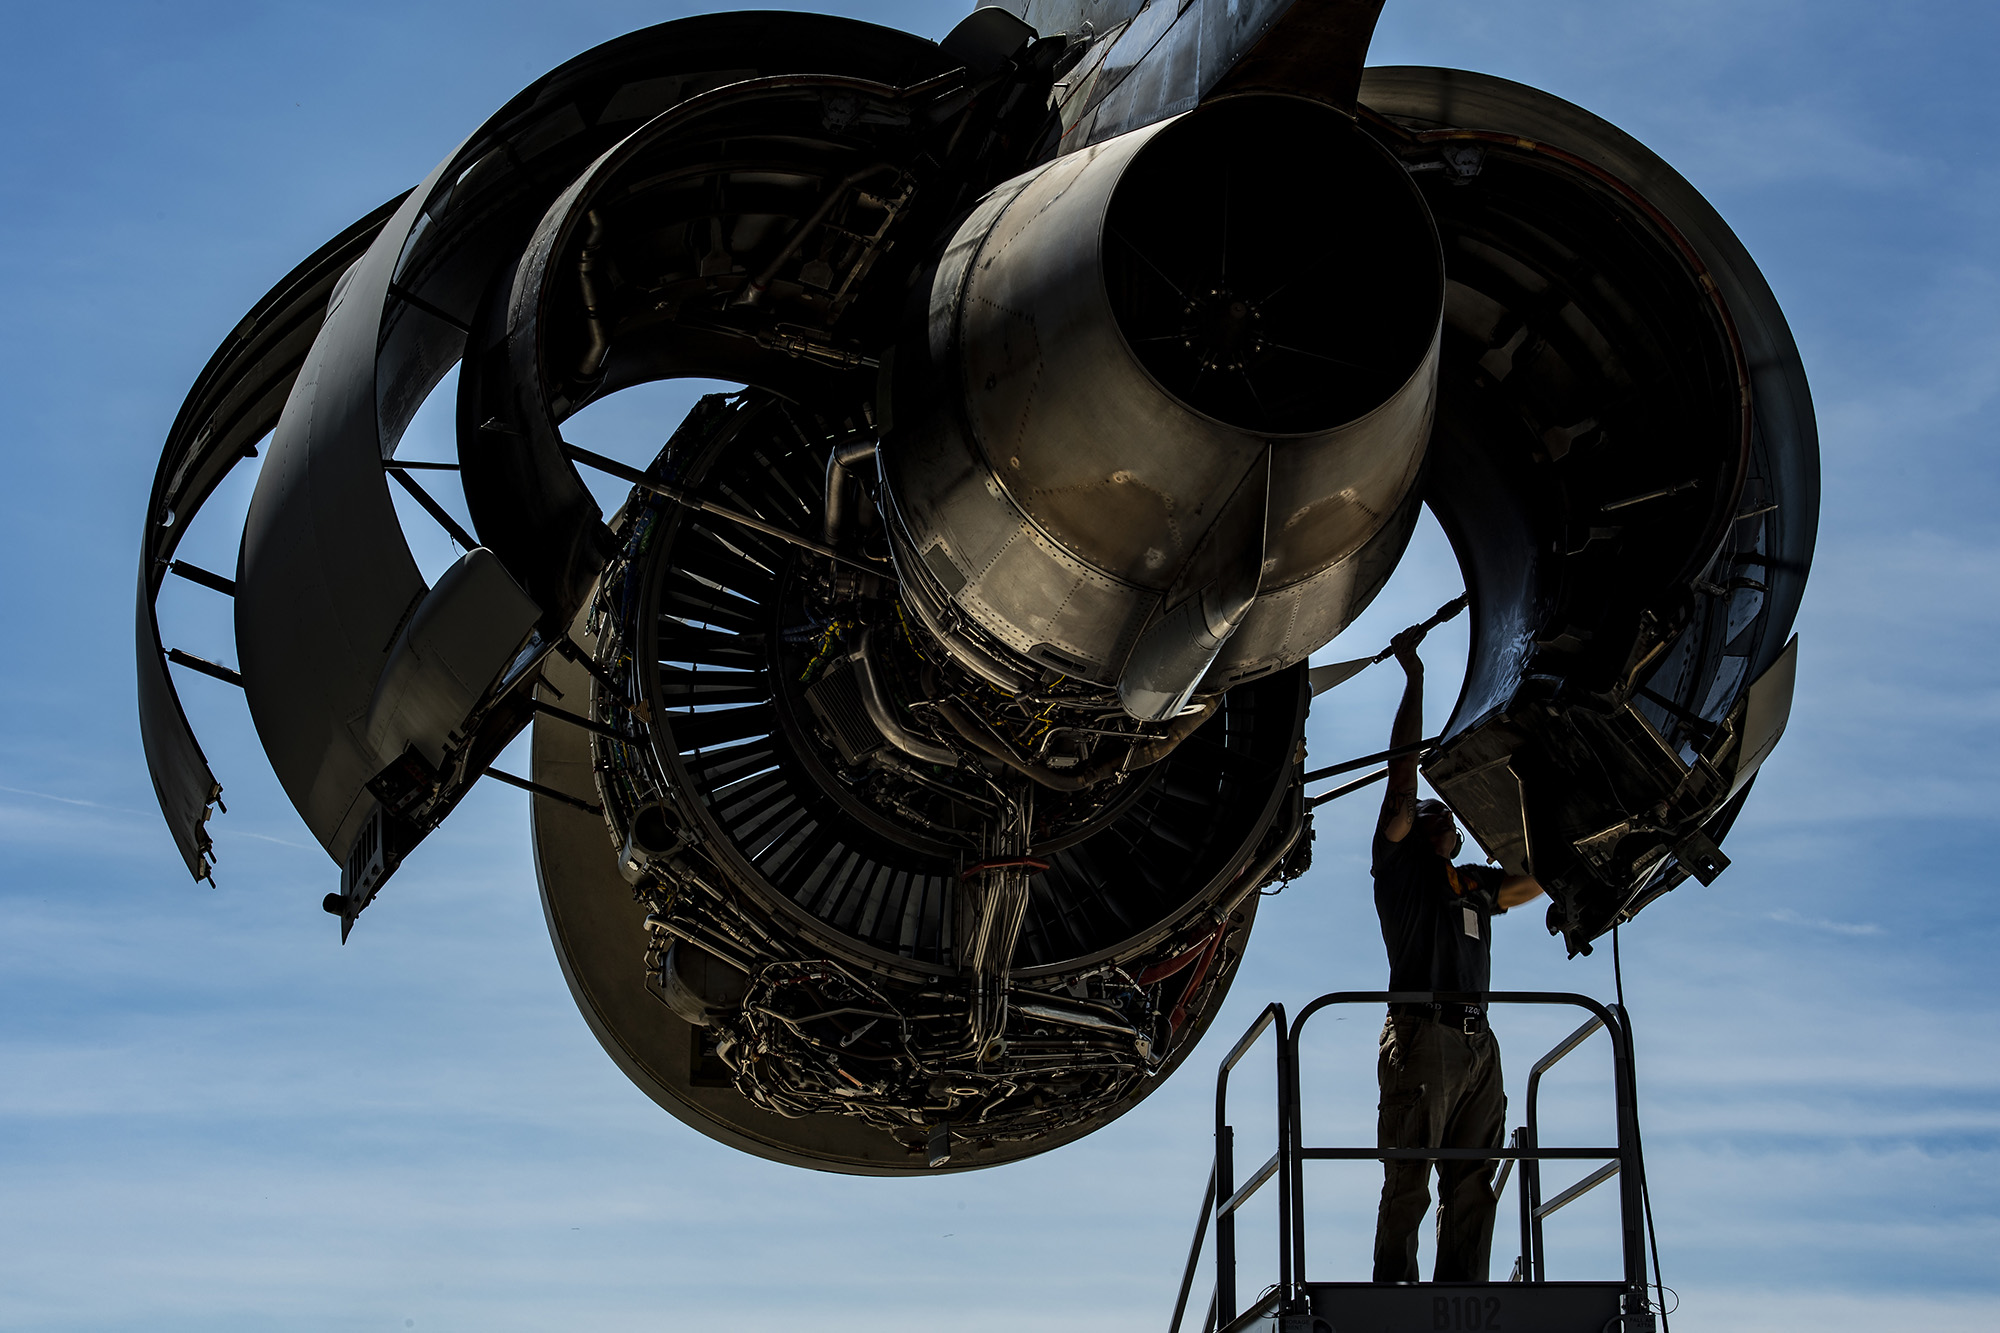 Staff Sgt. Samuel Peoples, 911th Maintenance Squadron aerospace propulsion technician, closes the thrust reverser fan duct on a C-17 Globemaster III engine at the Pittsburgh International Airport Air Reserve Station, Pa., July 15, 2020. (Joshua J. Seybert/Air Force)